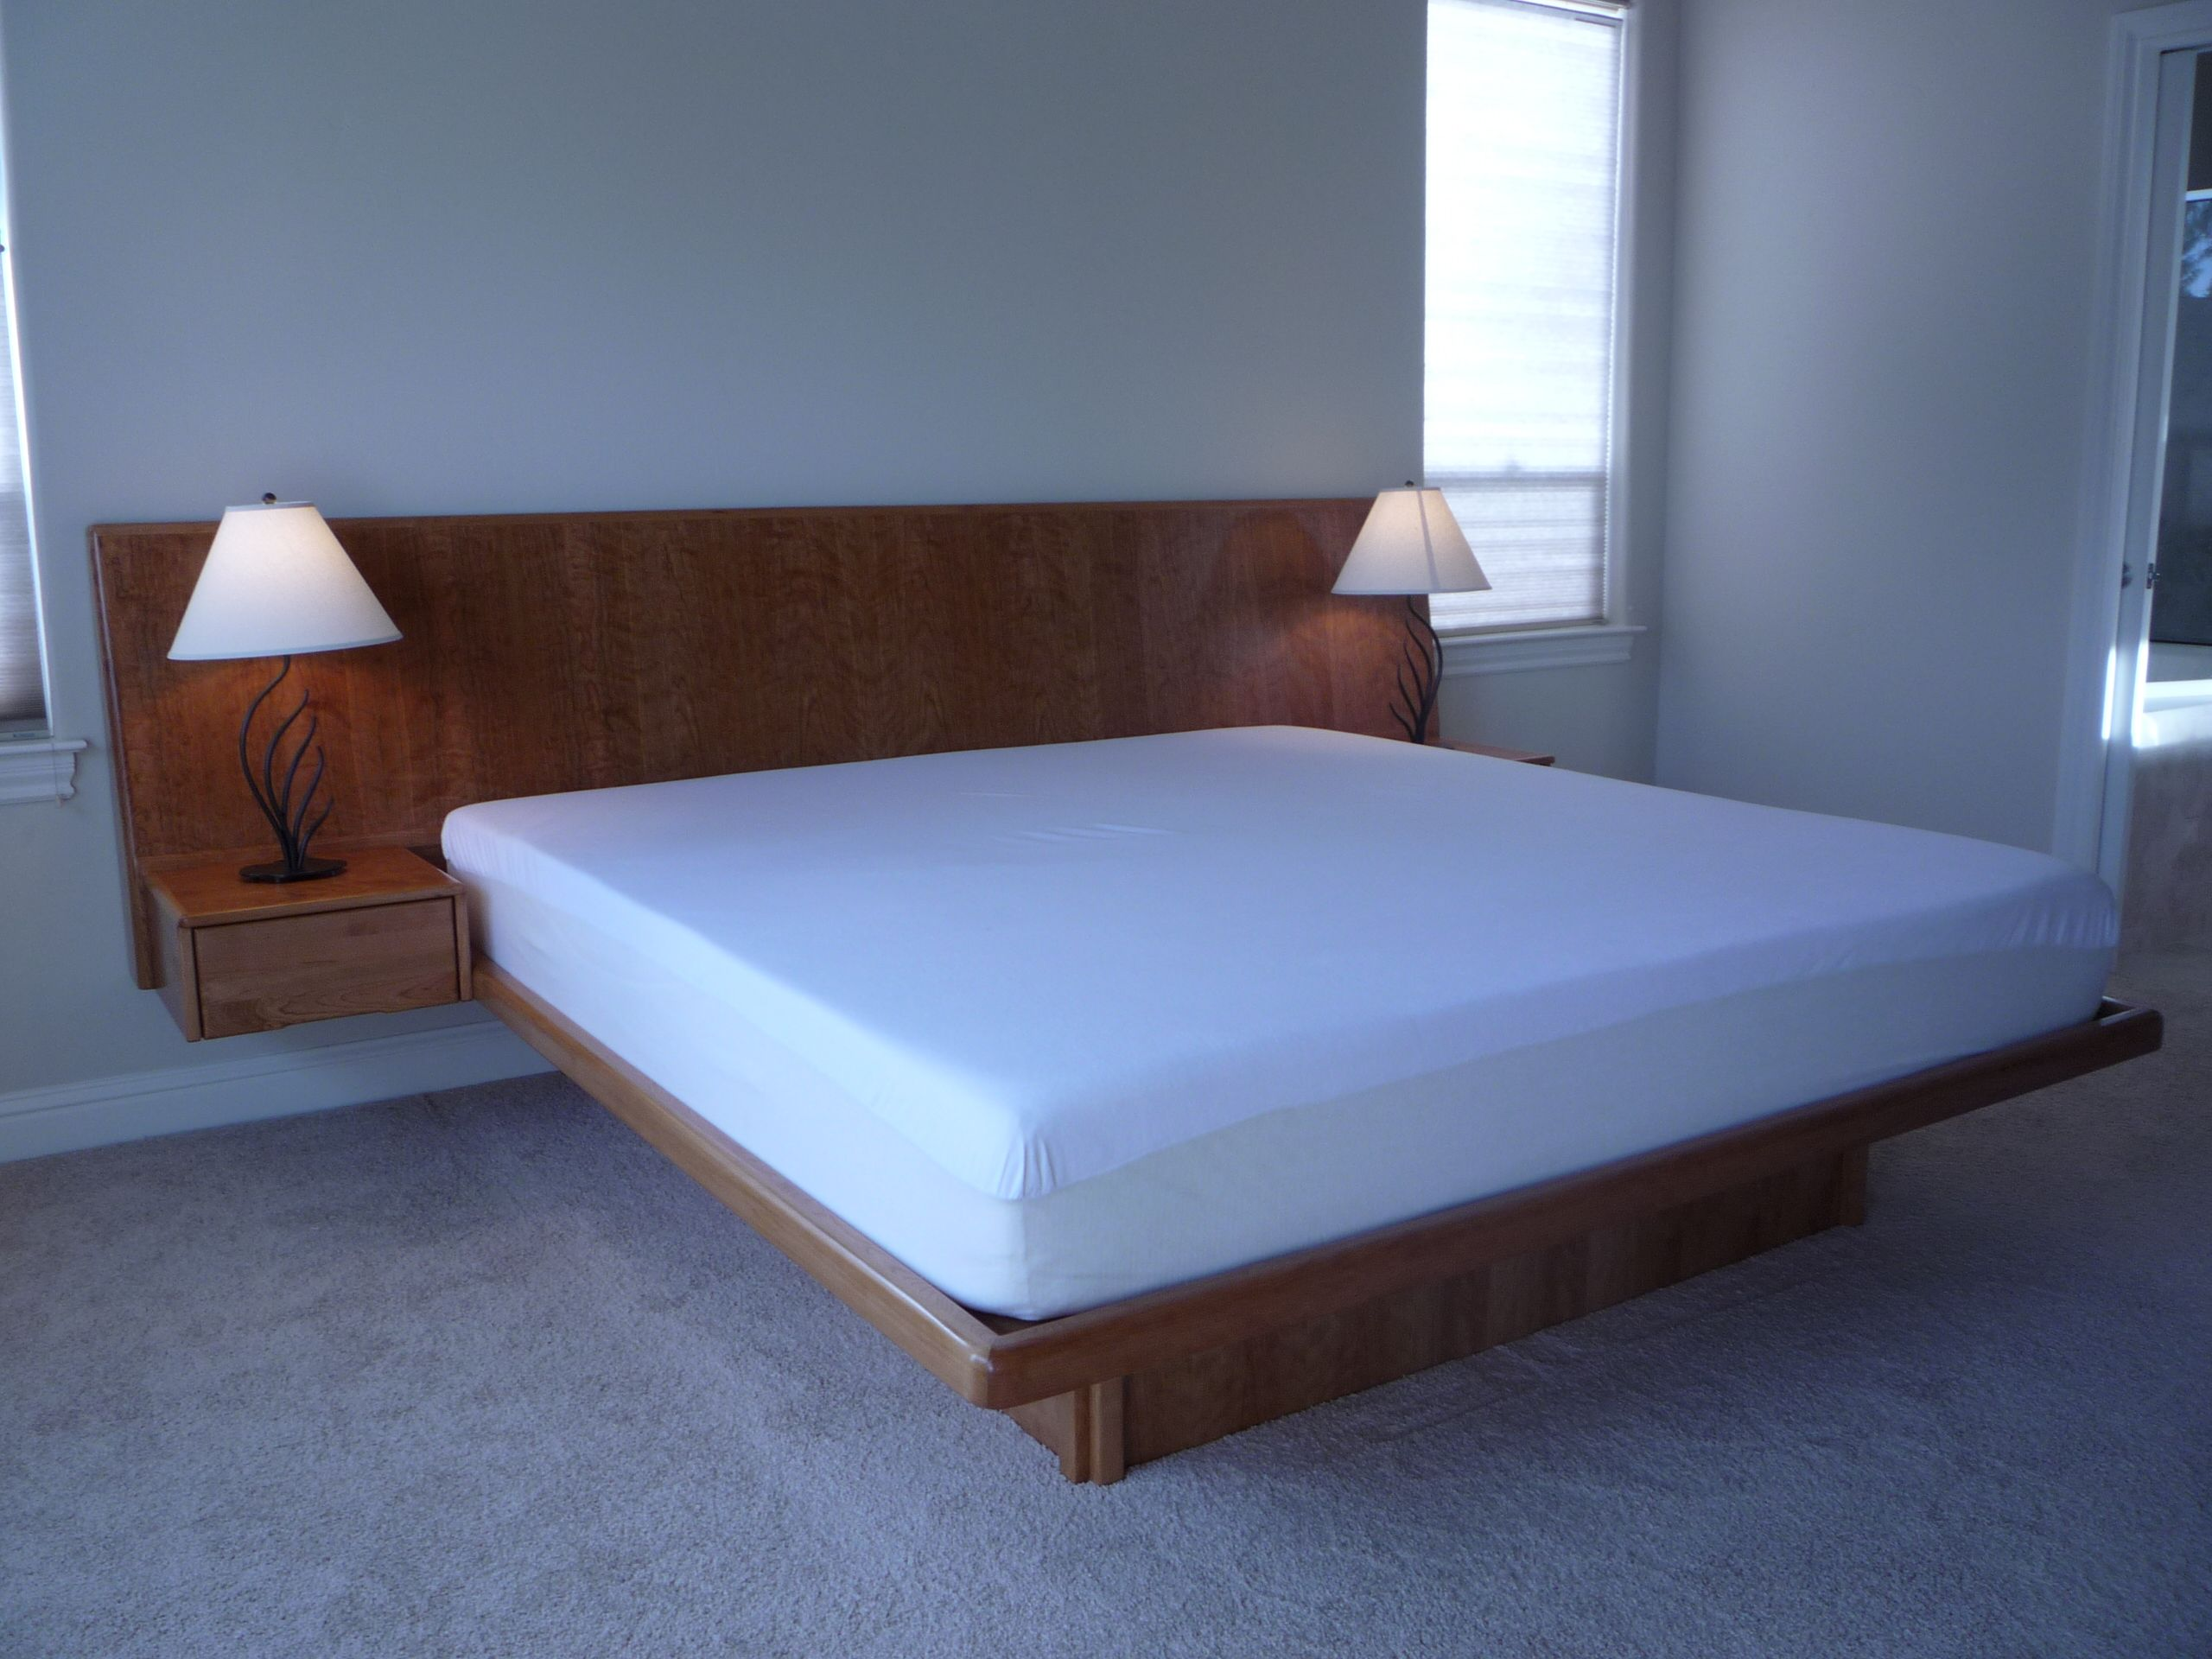 platform bed headboard ideas